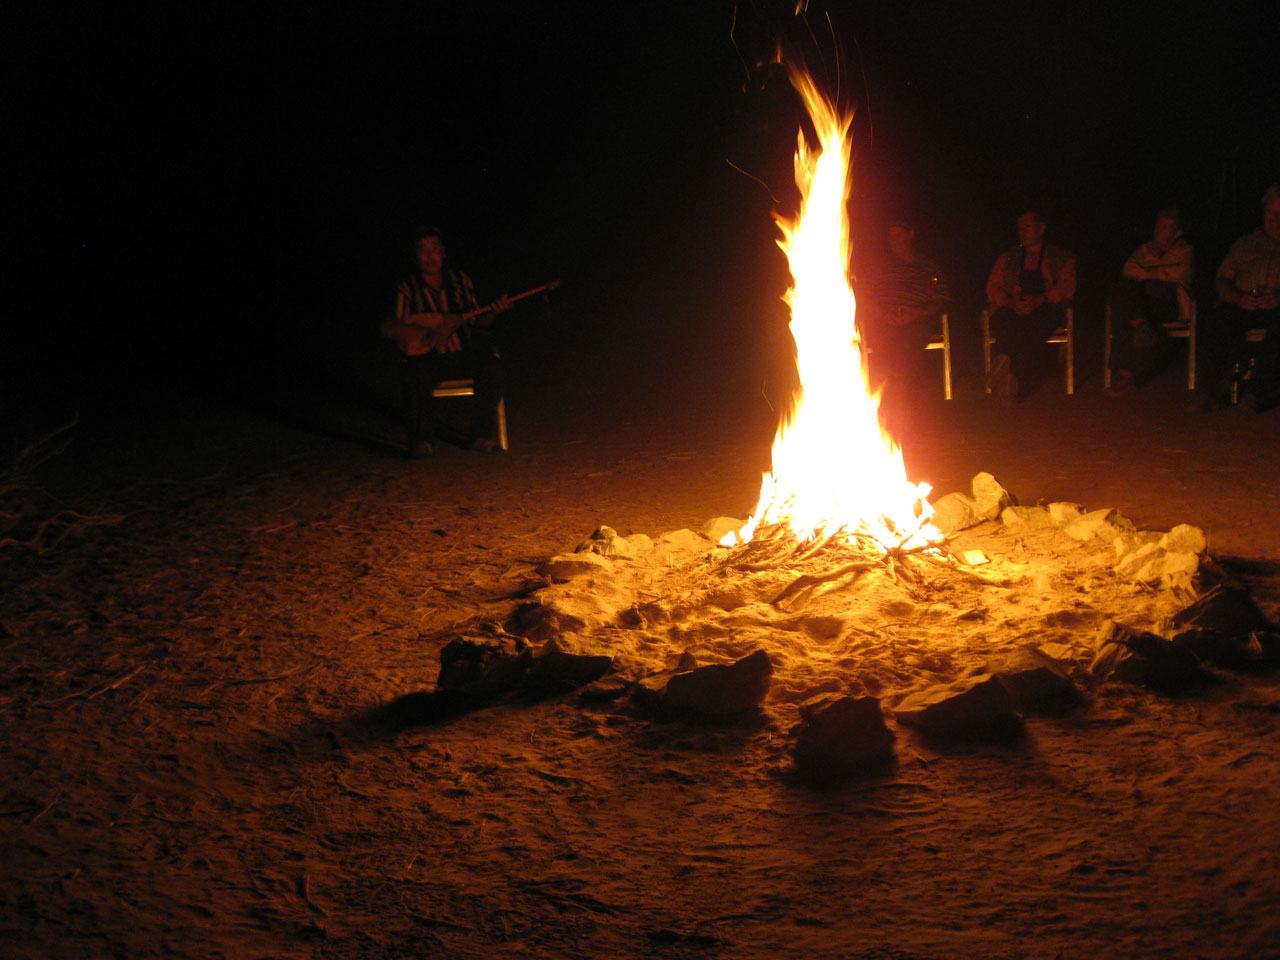 Traditional Kazakh songs around the campfire at Yangikazgan, Uzbekistan